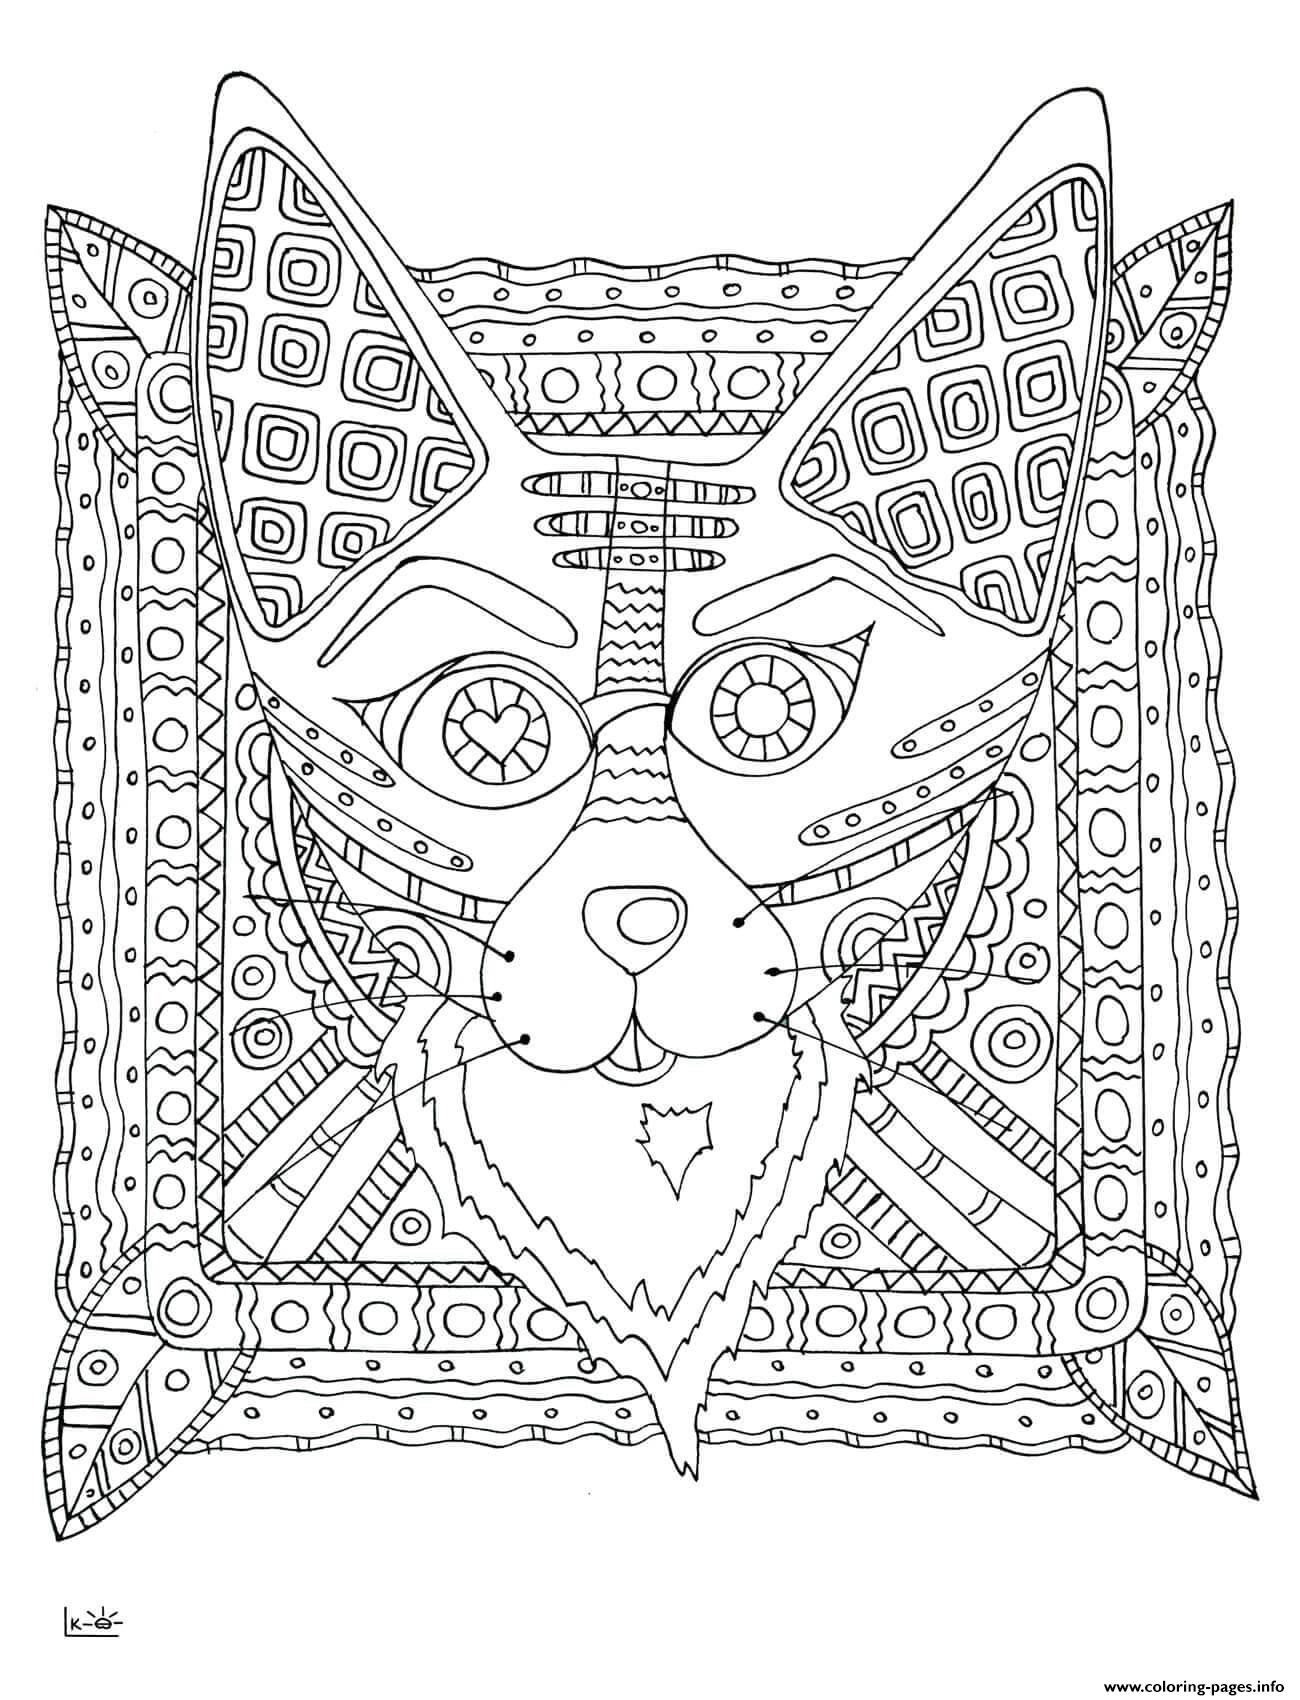 Fox with tribal pattern adults coloring pages printable for Tribal pattern coloring pages